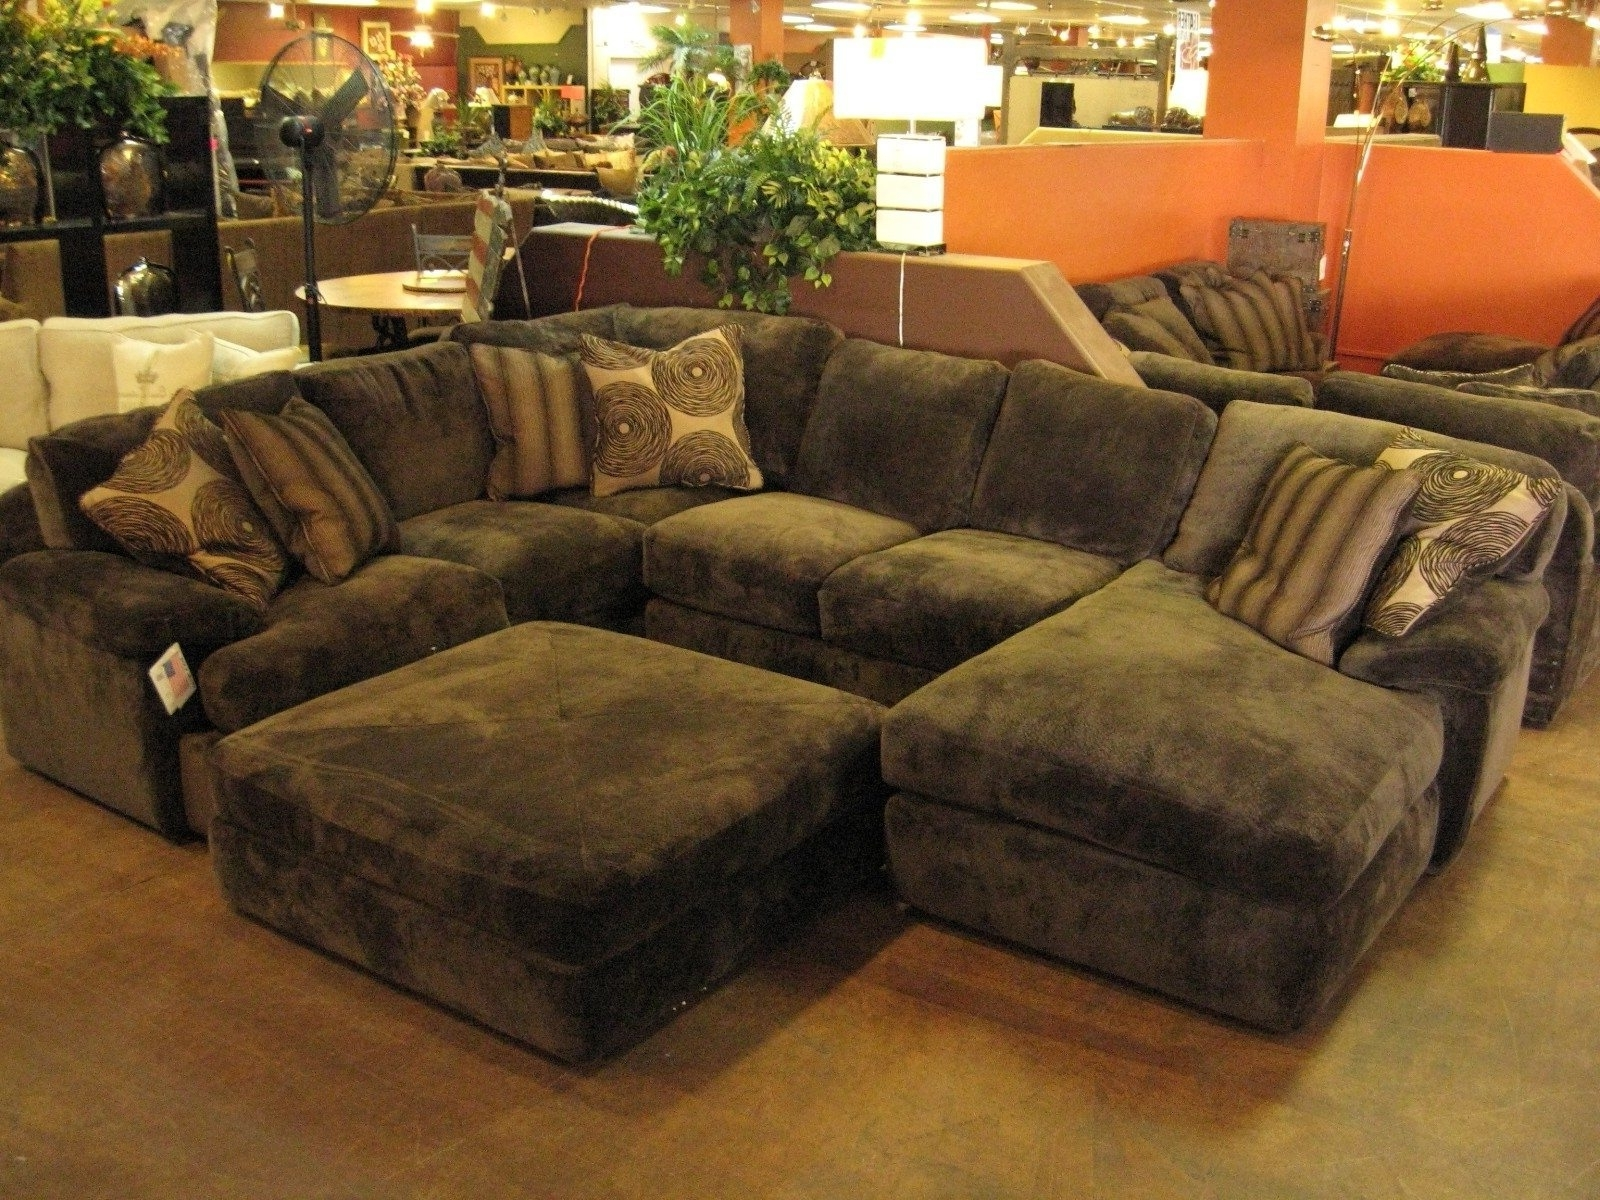 Sofa : Beautiful Large Sectional Sofa With Chaise L Shaped Cream Regarding Most Current Small Sectional Sofas With Chaise And Ottoman (Gallery 6 of 20)